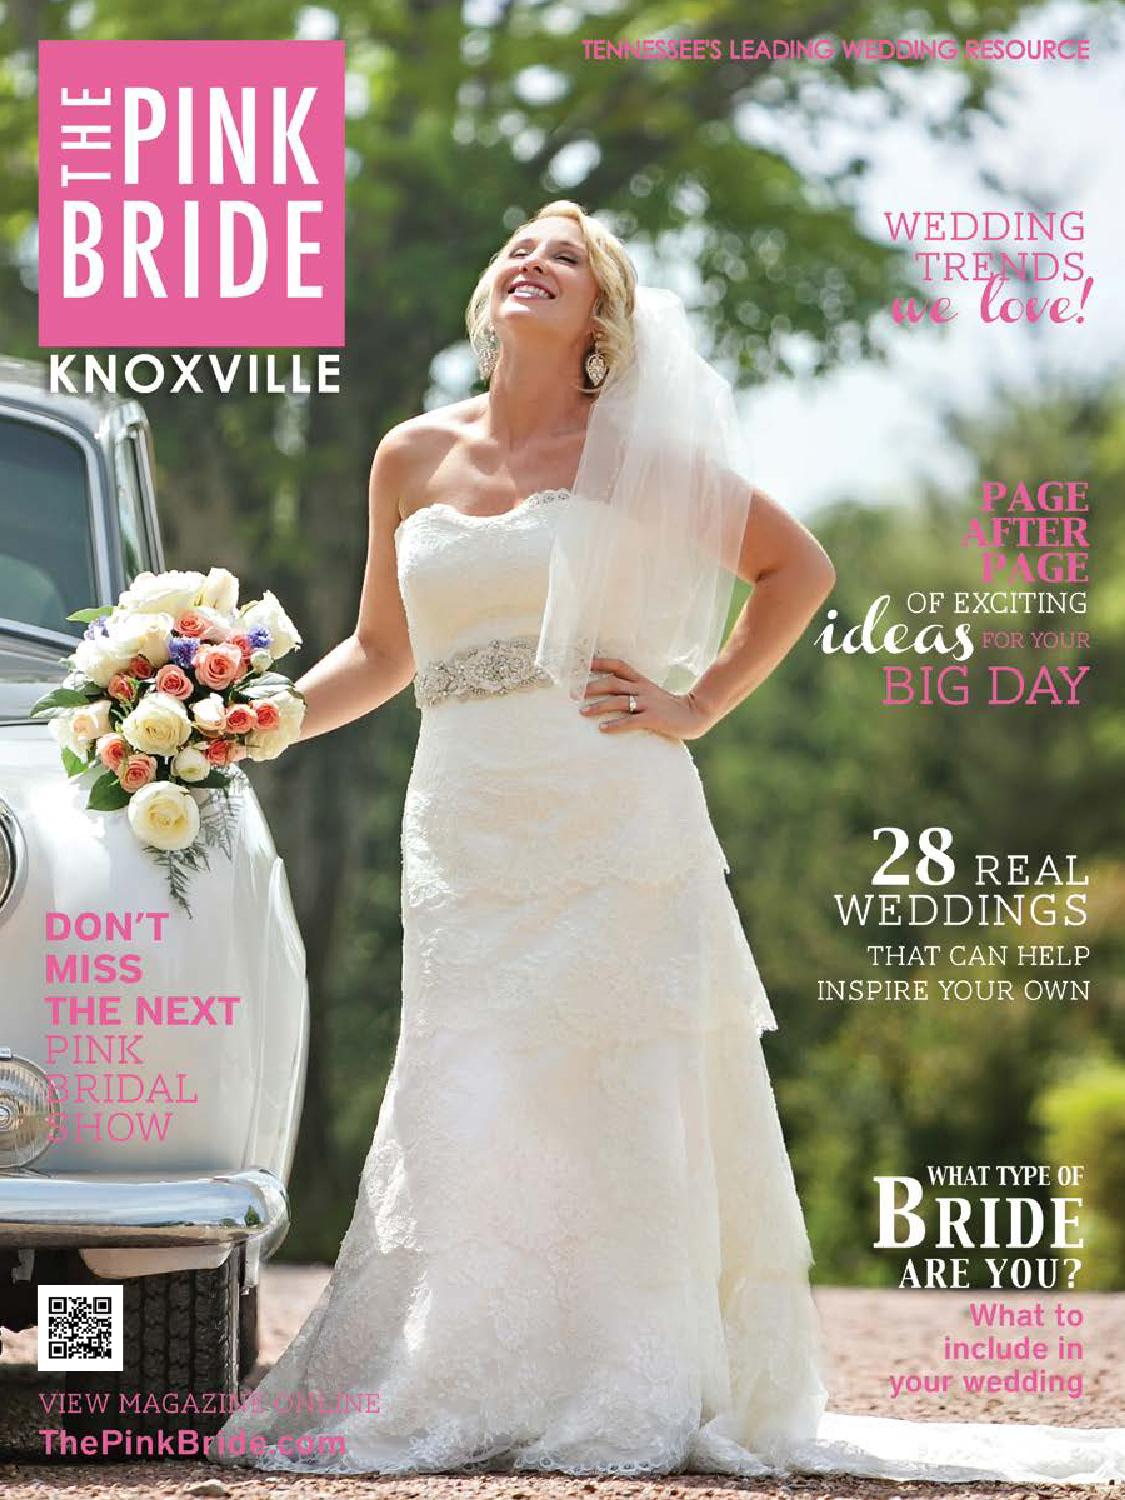 Knoxville Pink Bride Magazine Summer 2014 by The Pink Bride - issuu